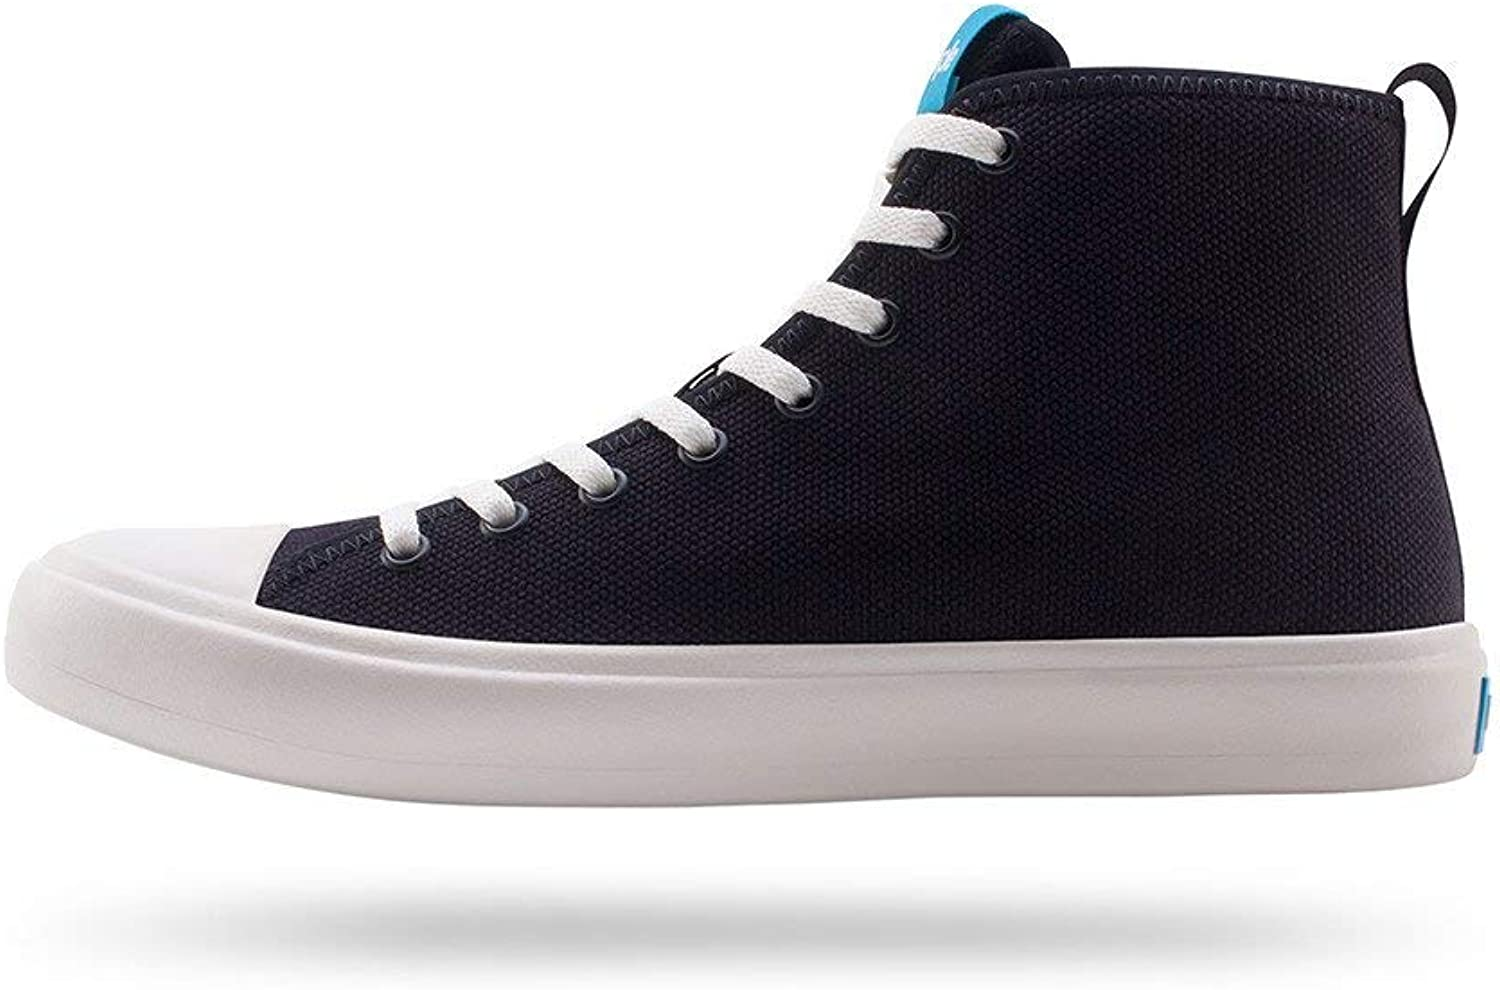 People Footwear The Phillips Classic Sneaker, Really Black Picket White, Mens 3